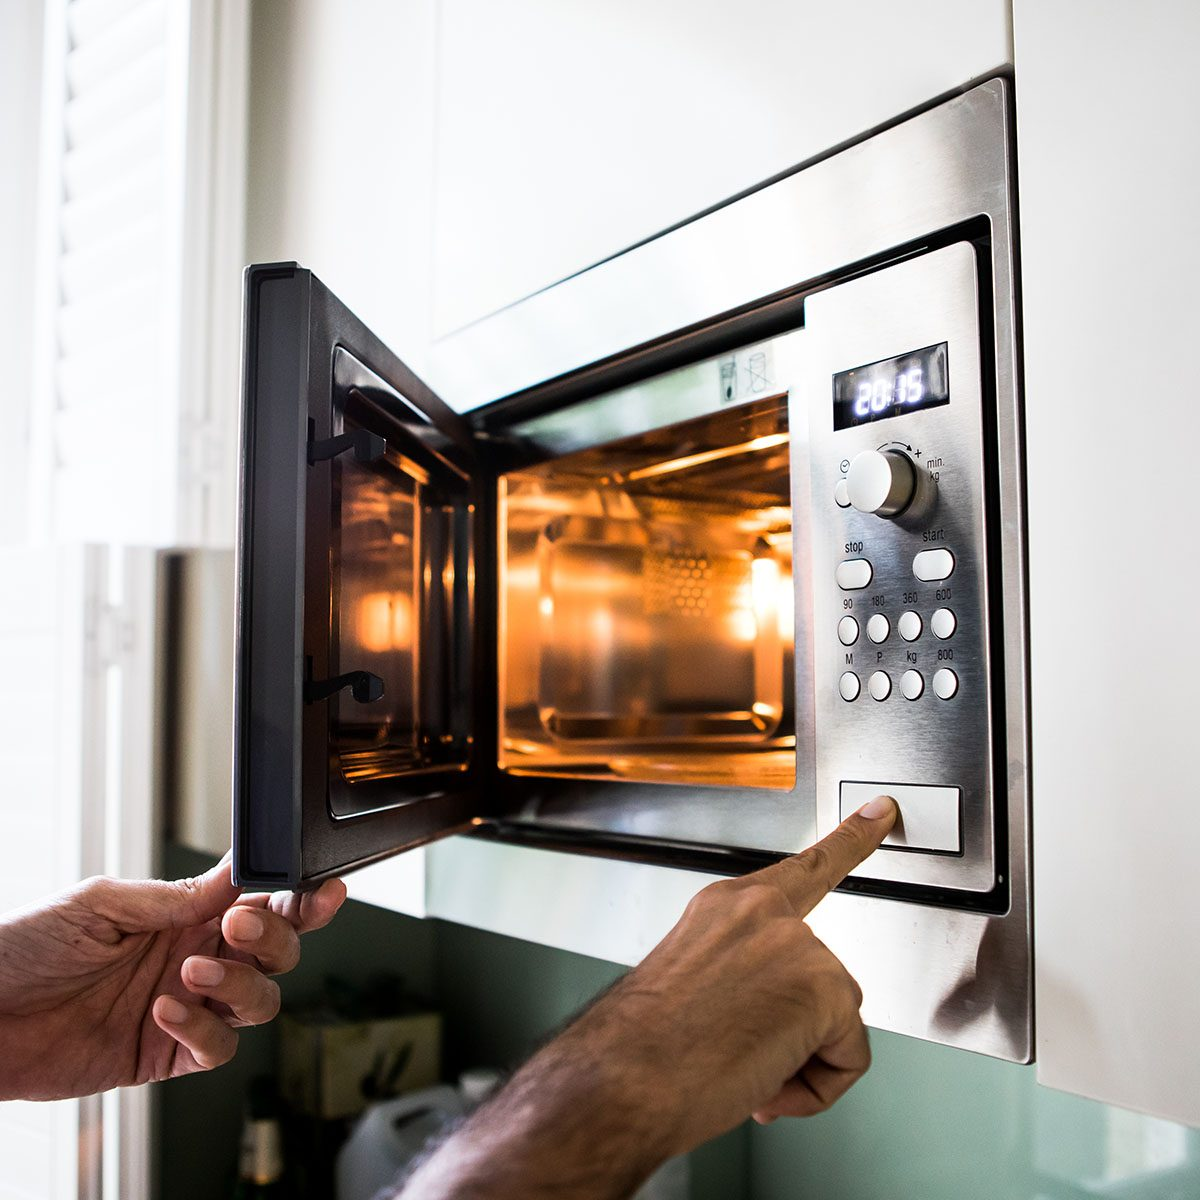 A man using a microwave oven. His finger on the opening button.